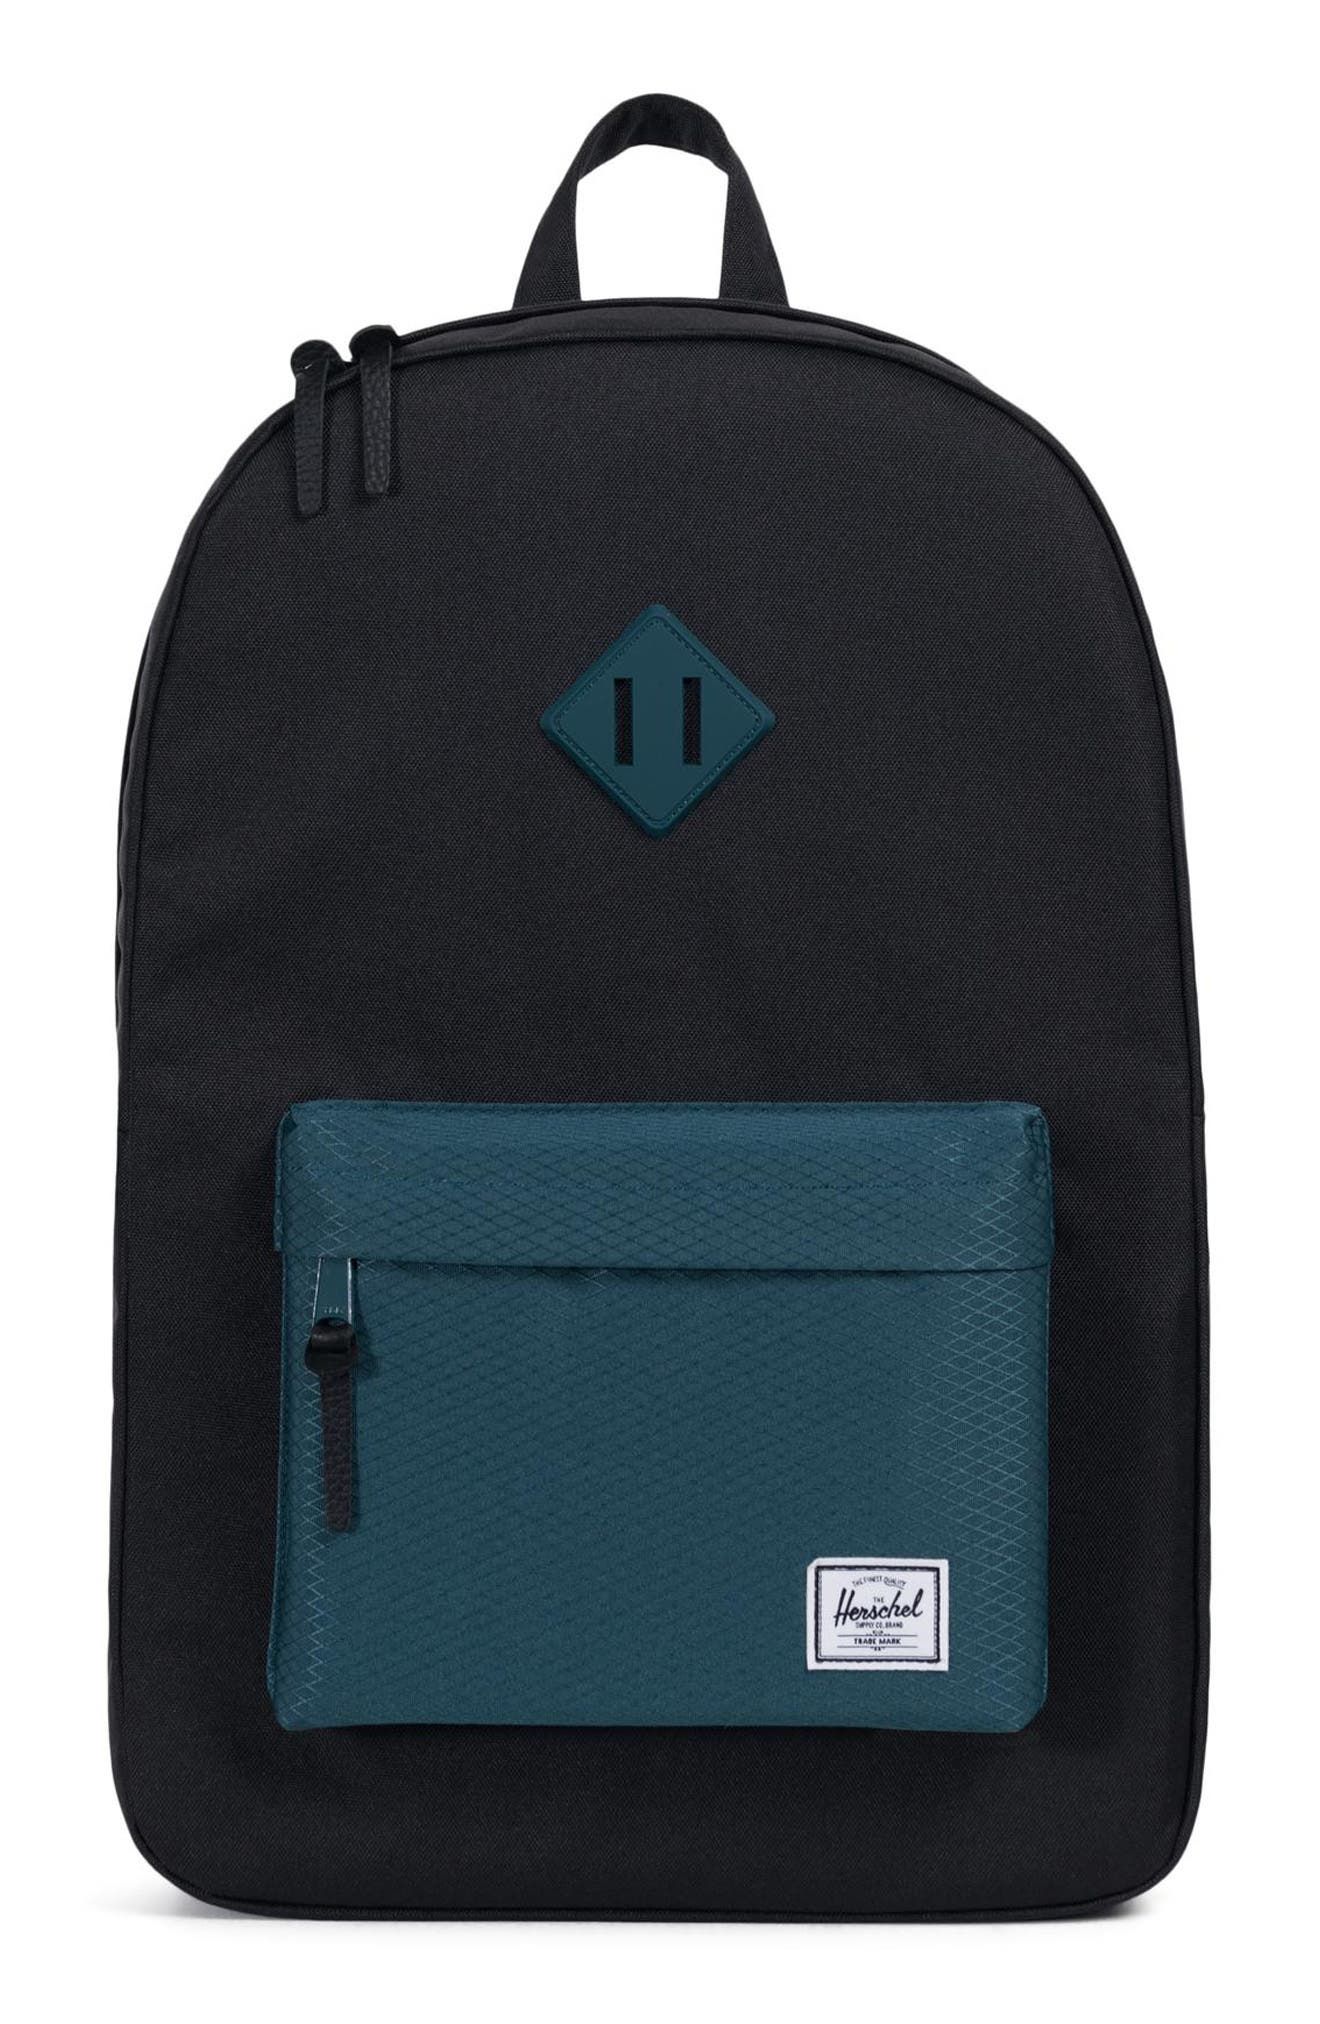 Heritage Backpack,                             Main thumbnail 1, color,                             BLACK/ DEEP TEAL